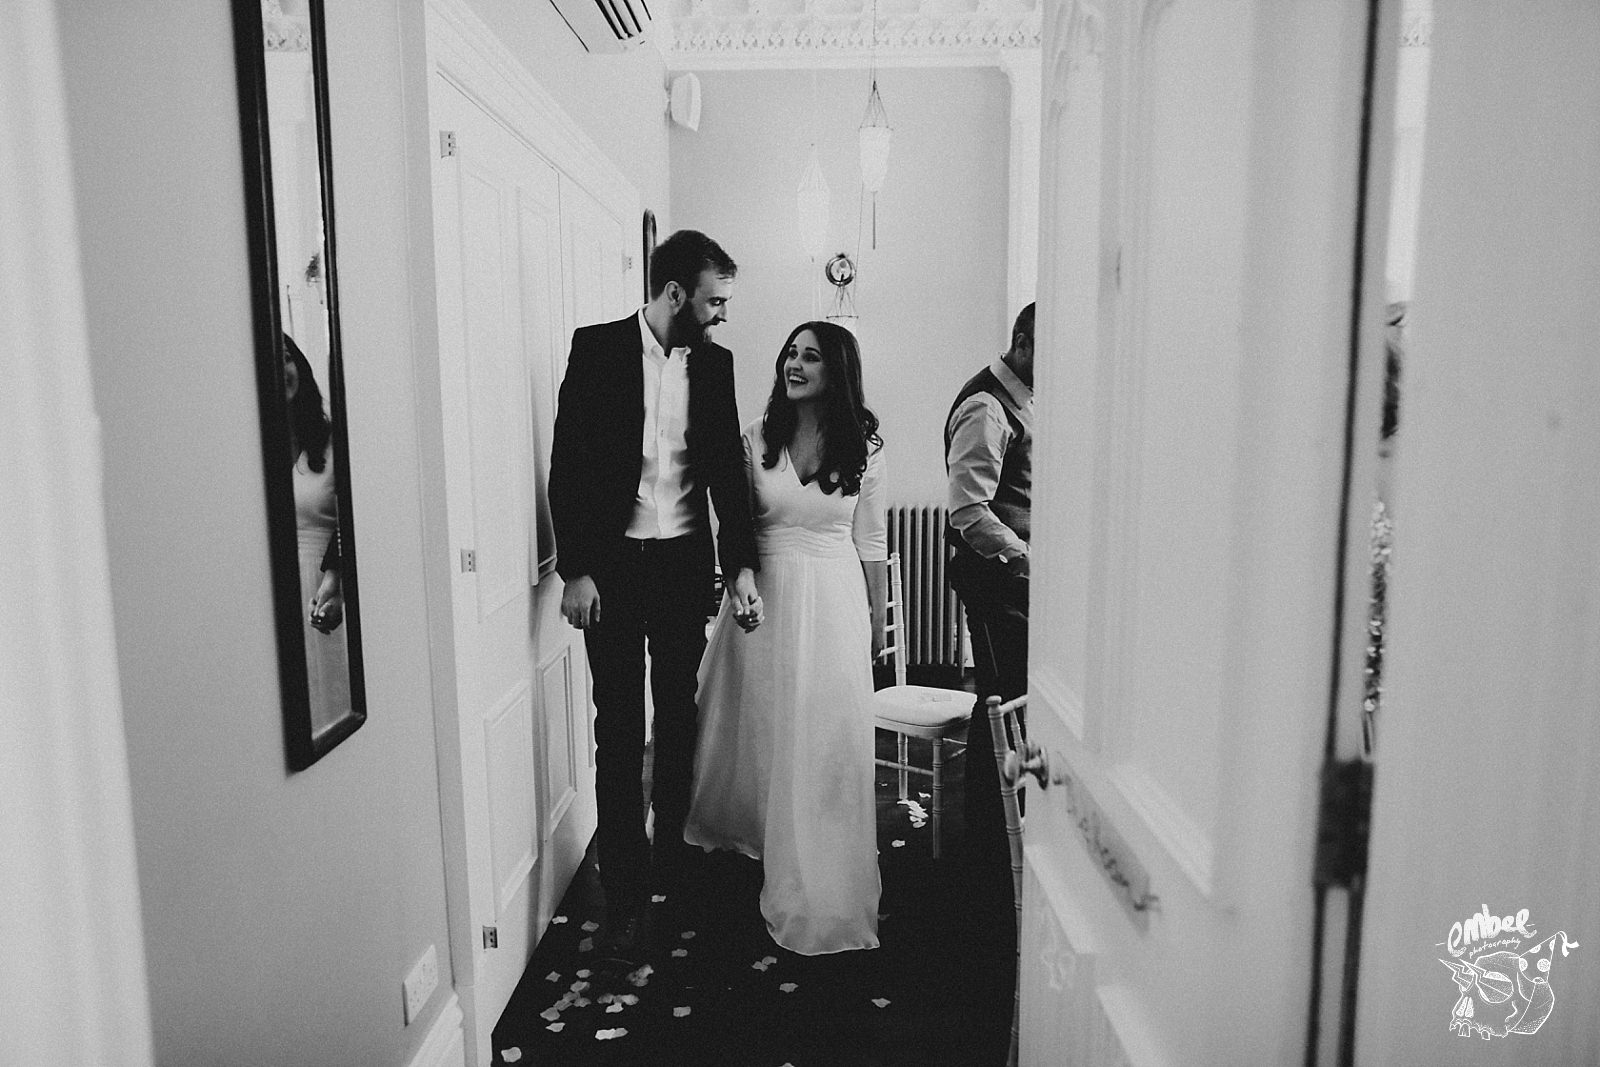 bride and groom leave ceremony room